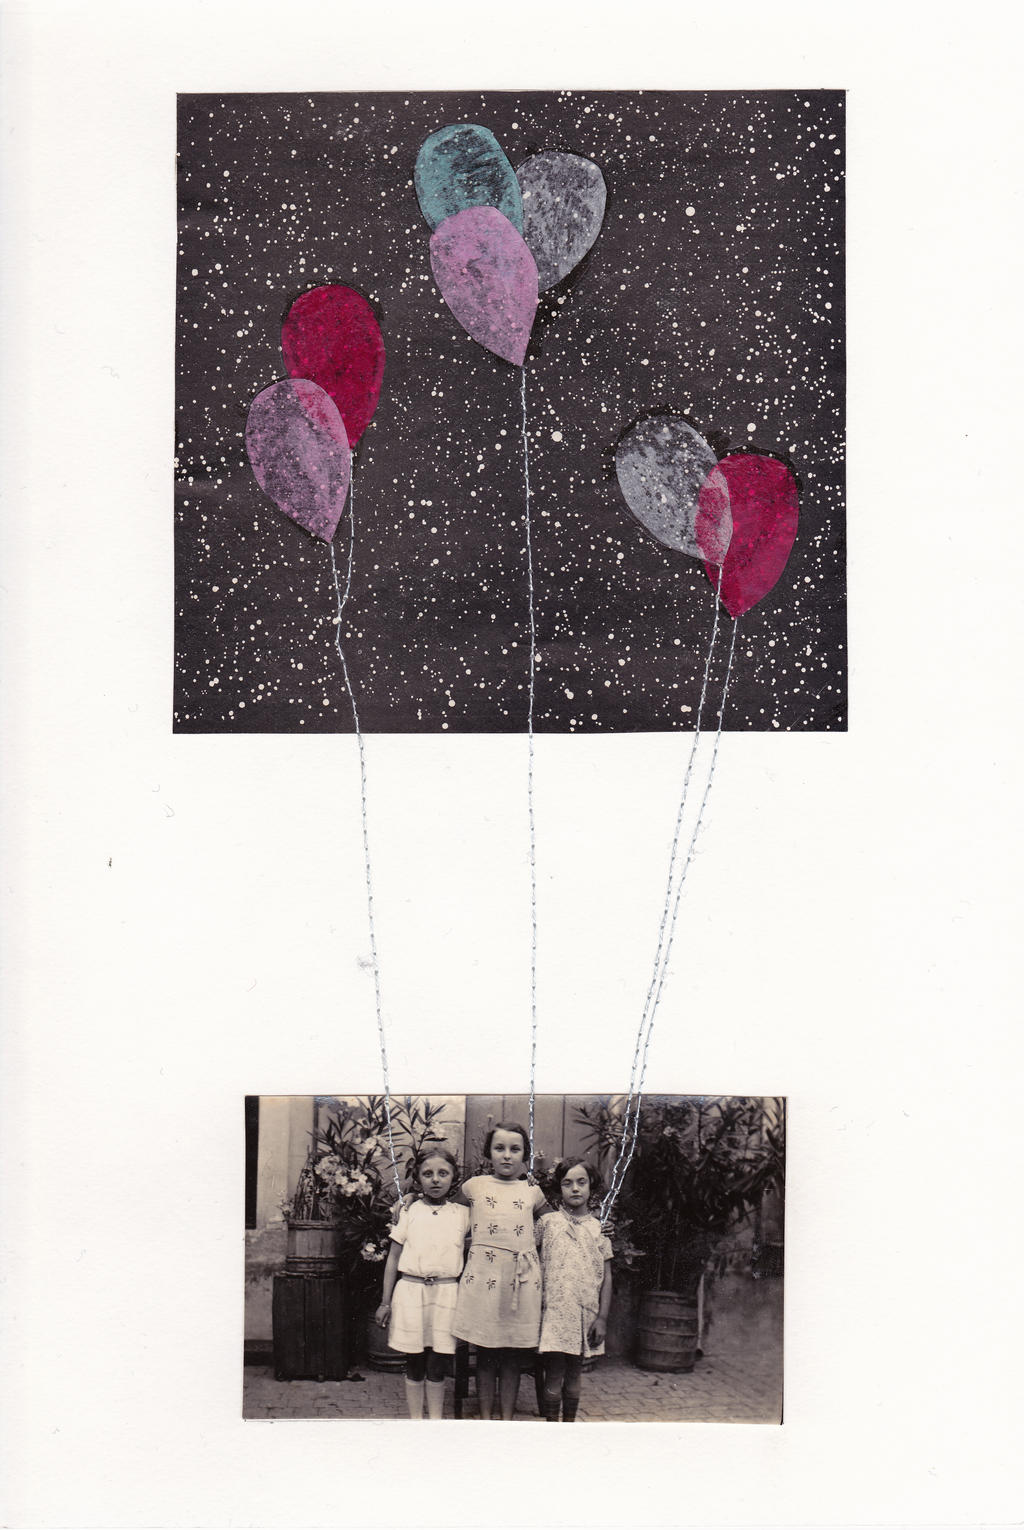 Collage 2013 005 by ArianeJurquet